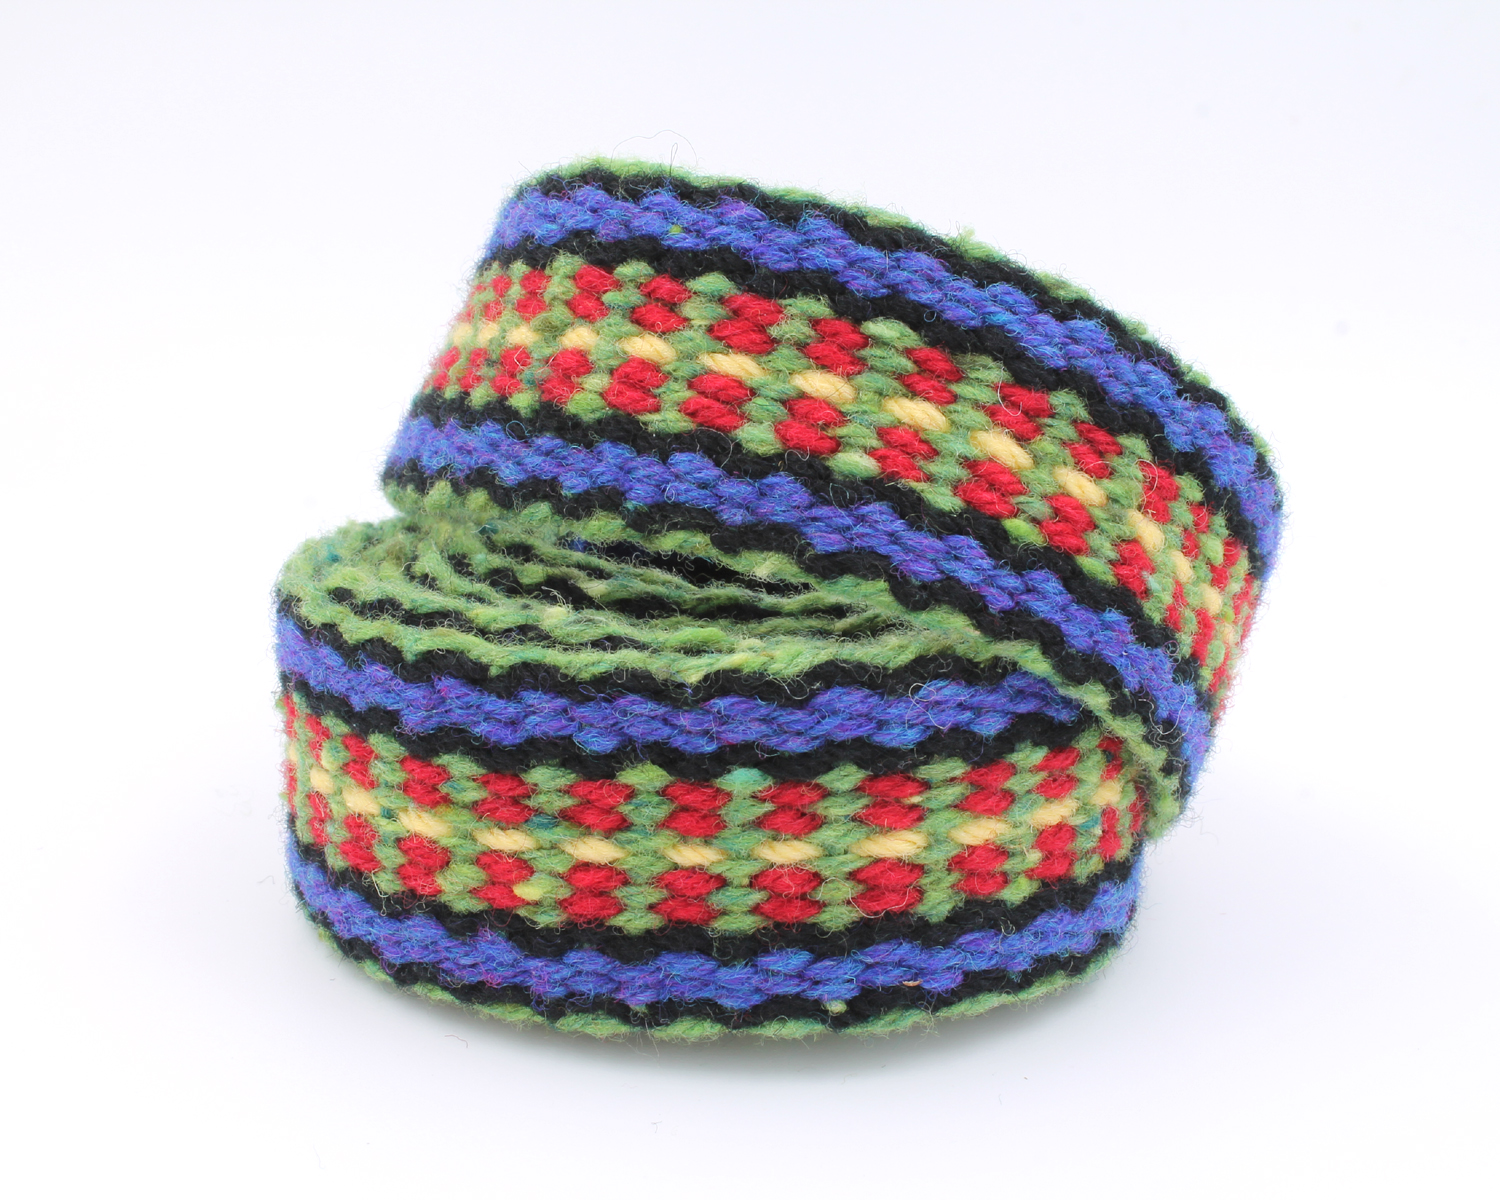 Handfasting Cord - Aran Islands 2